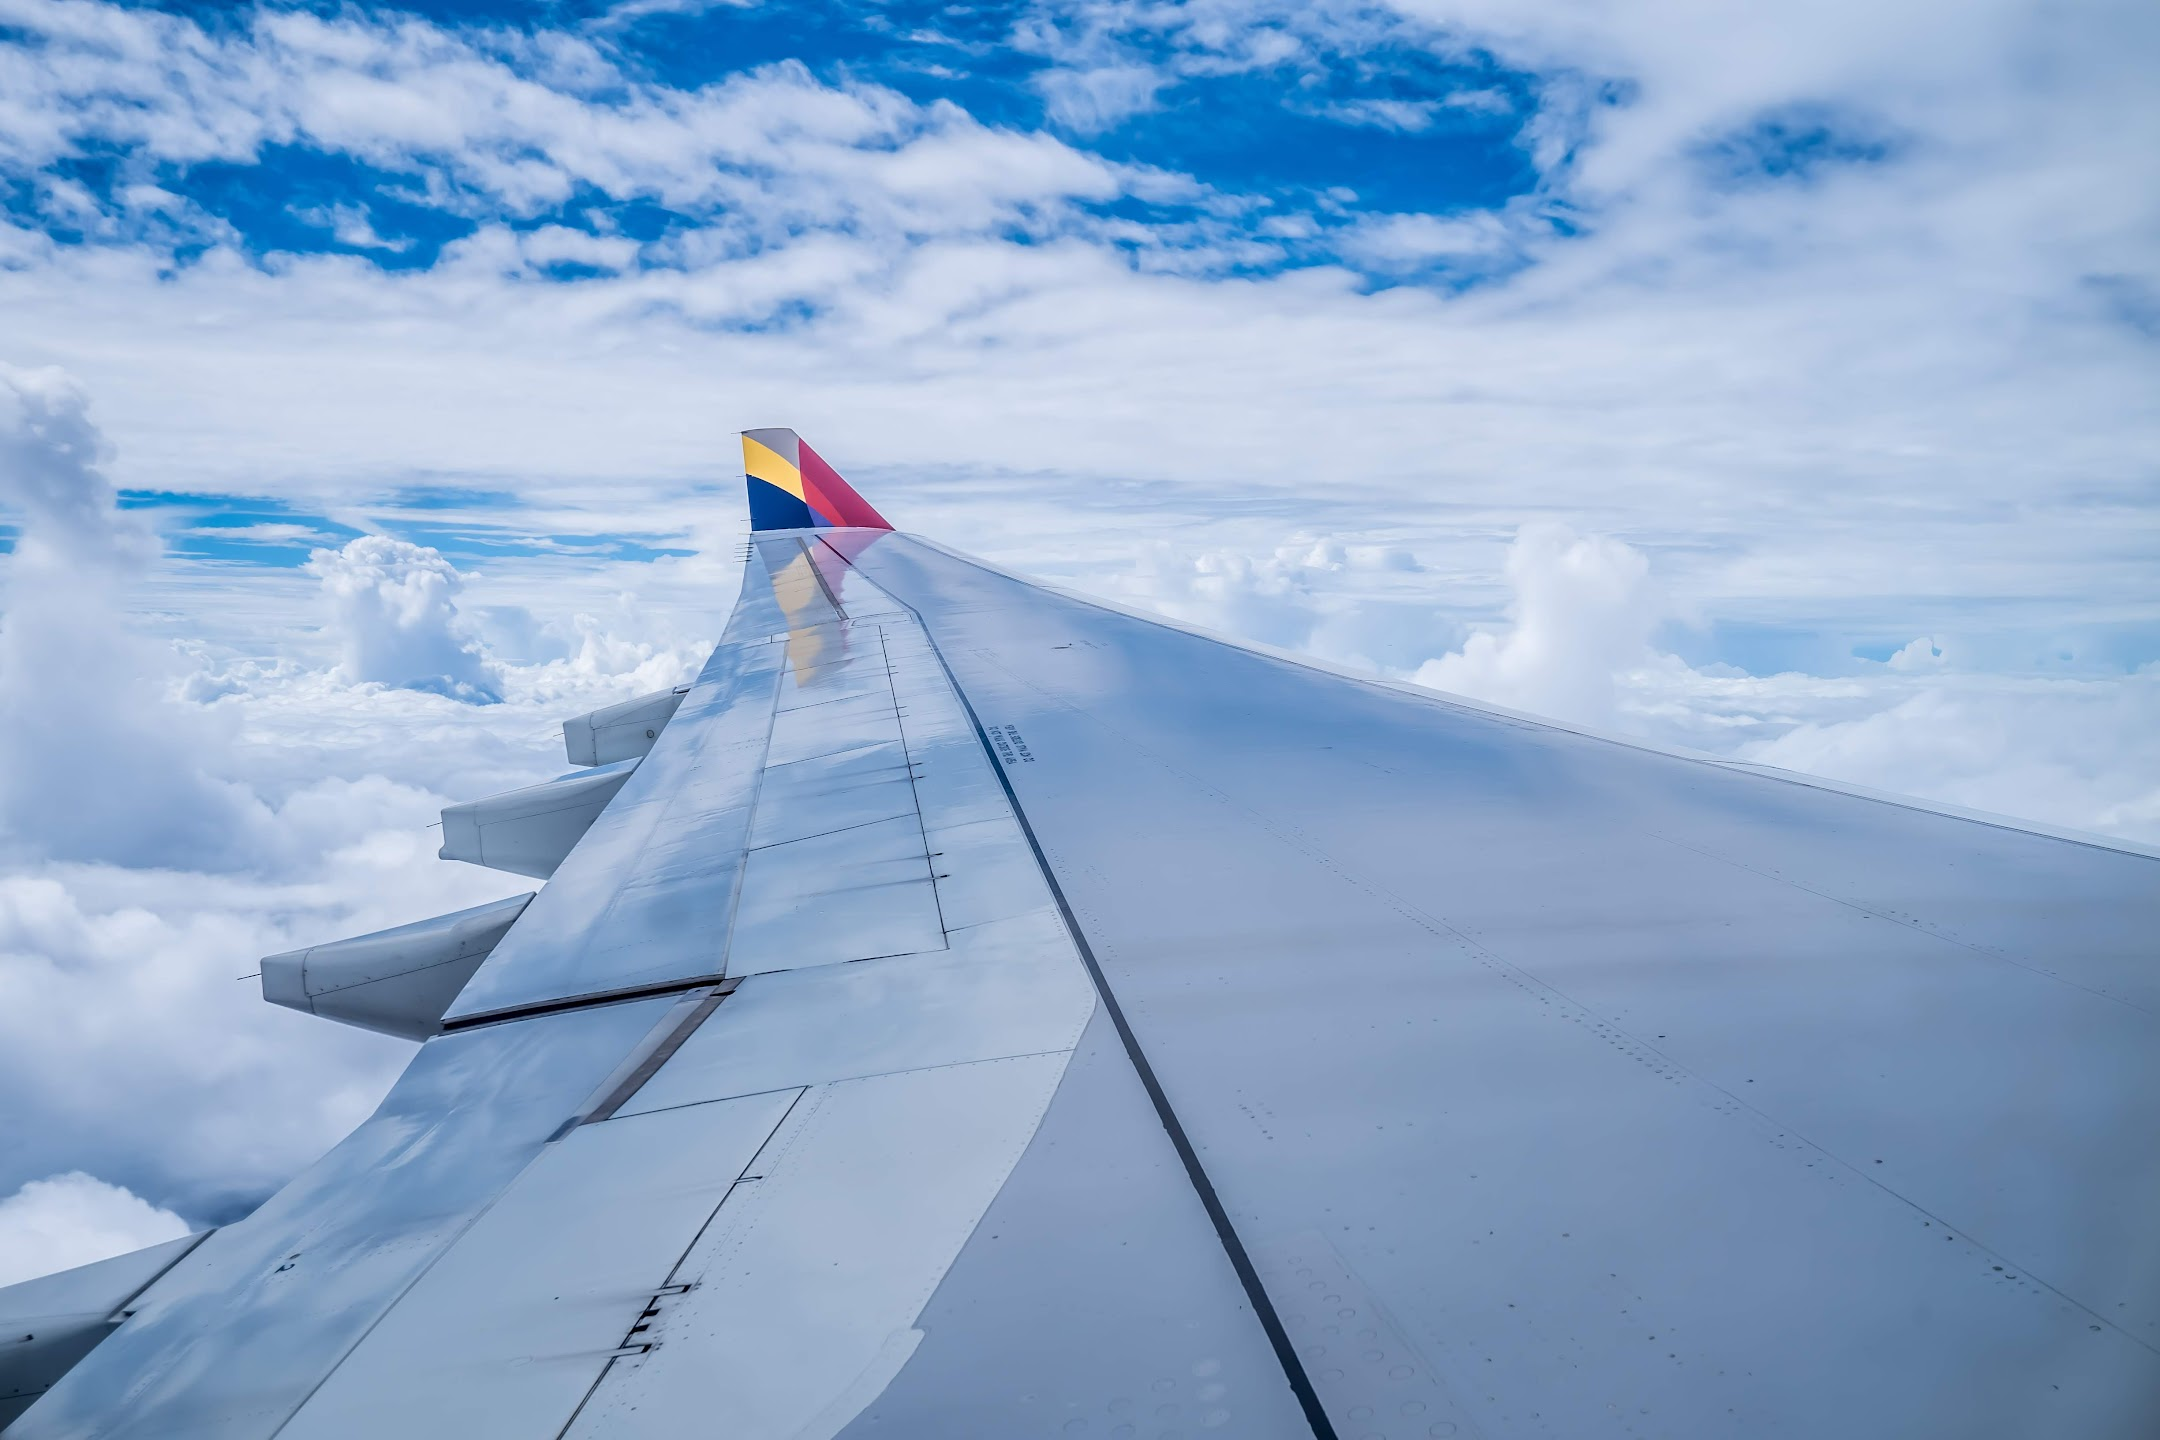 Asiana Airlines window view